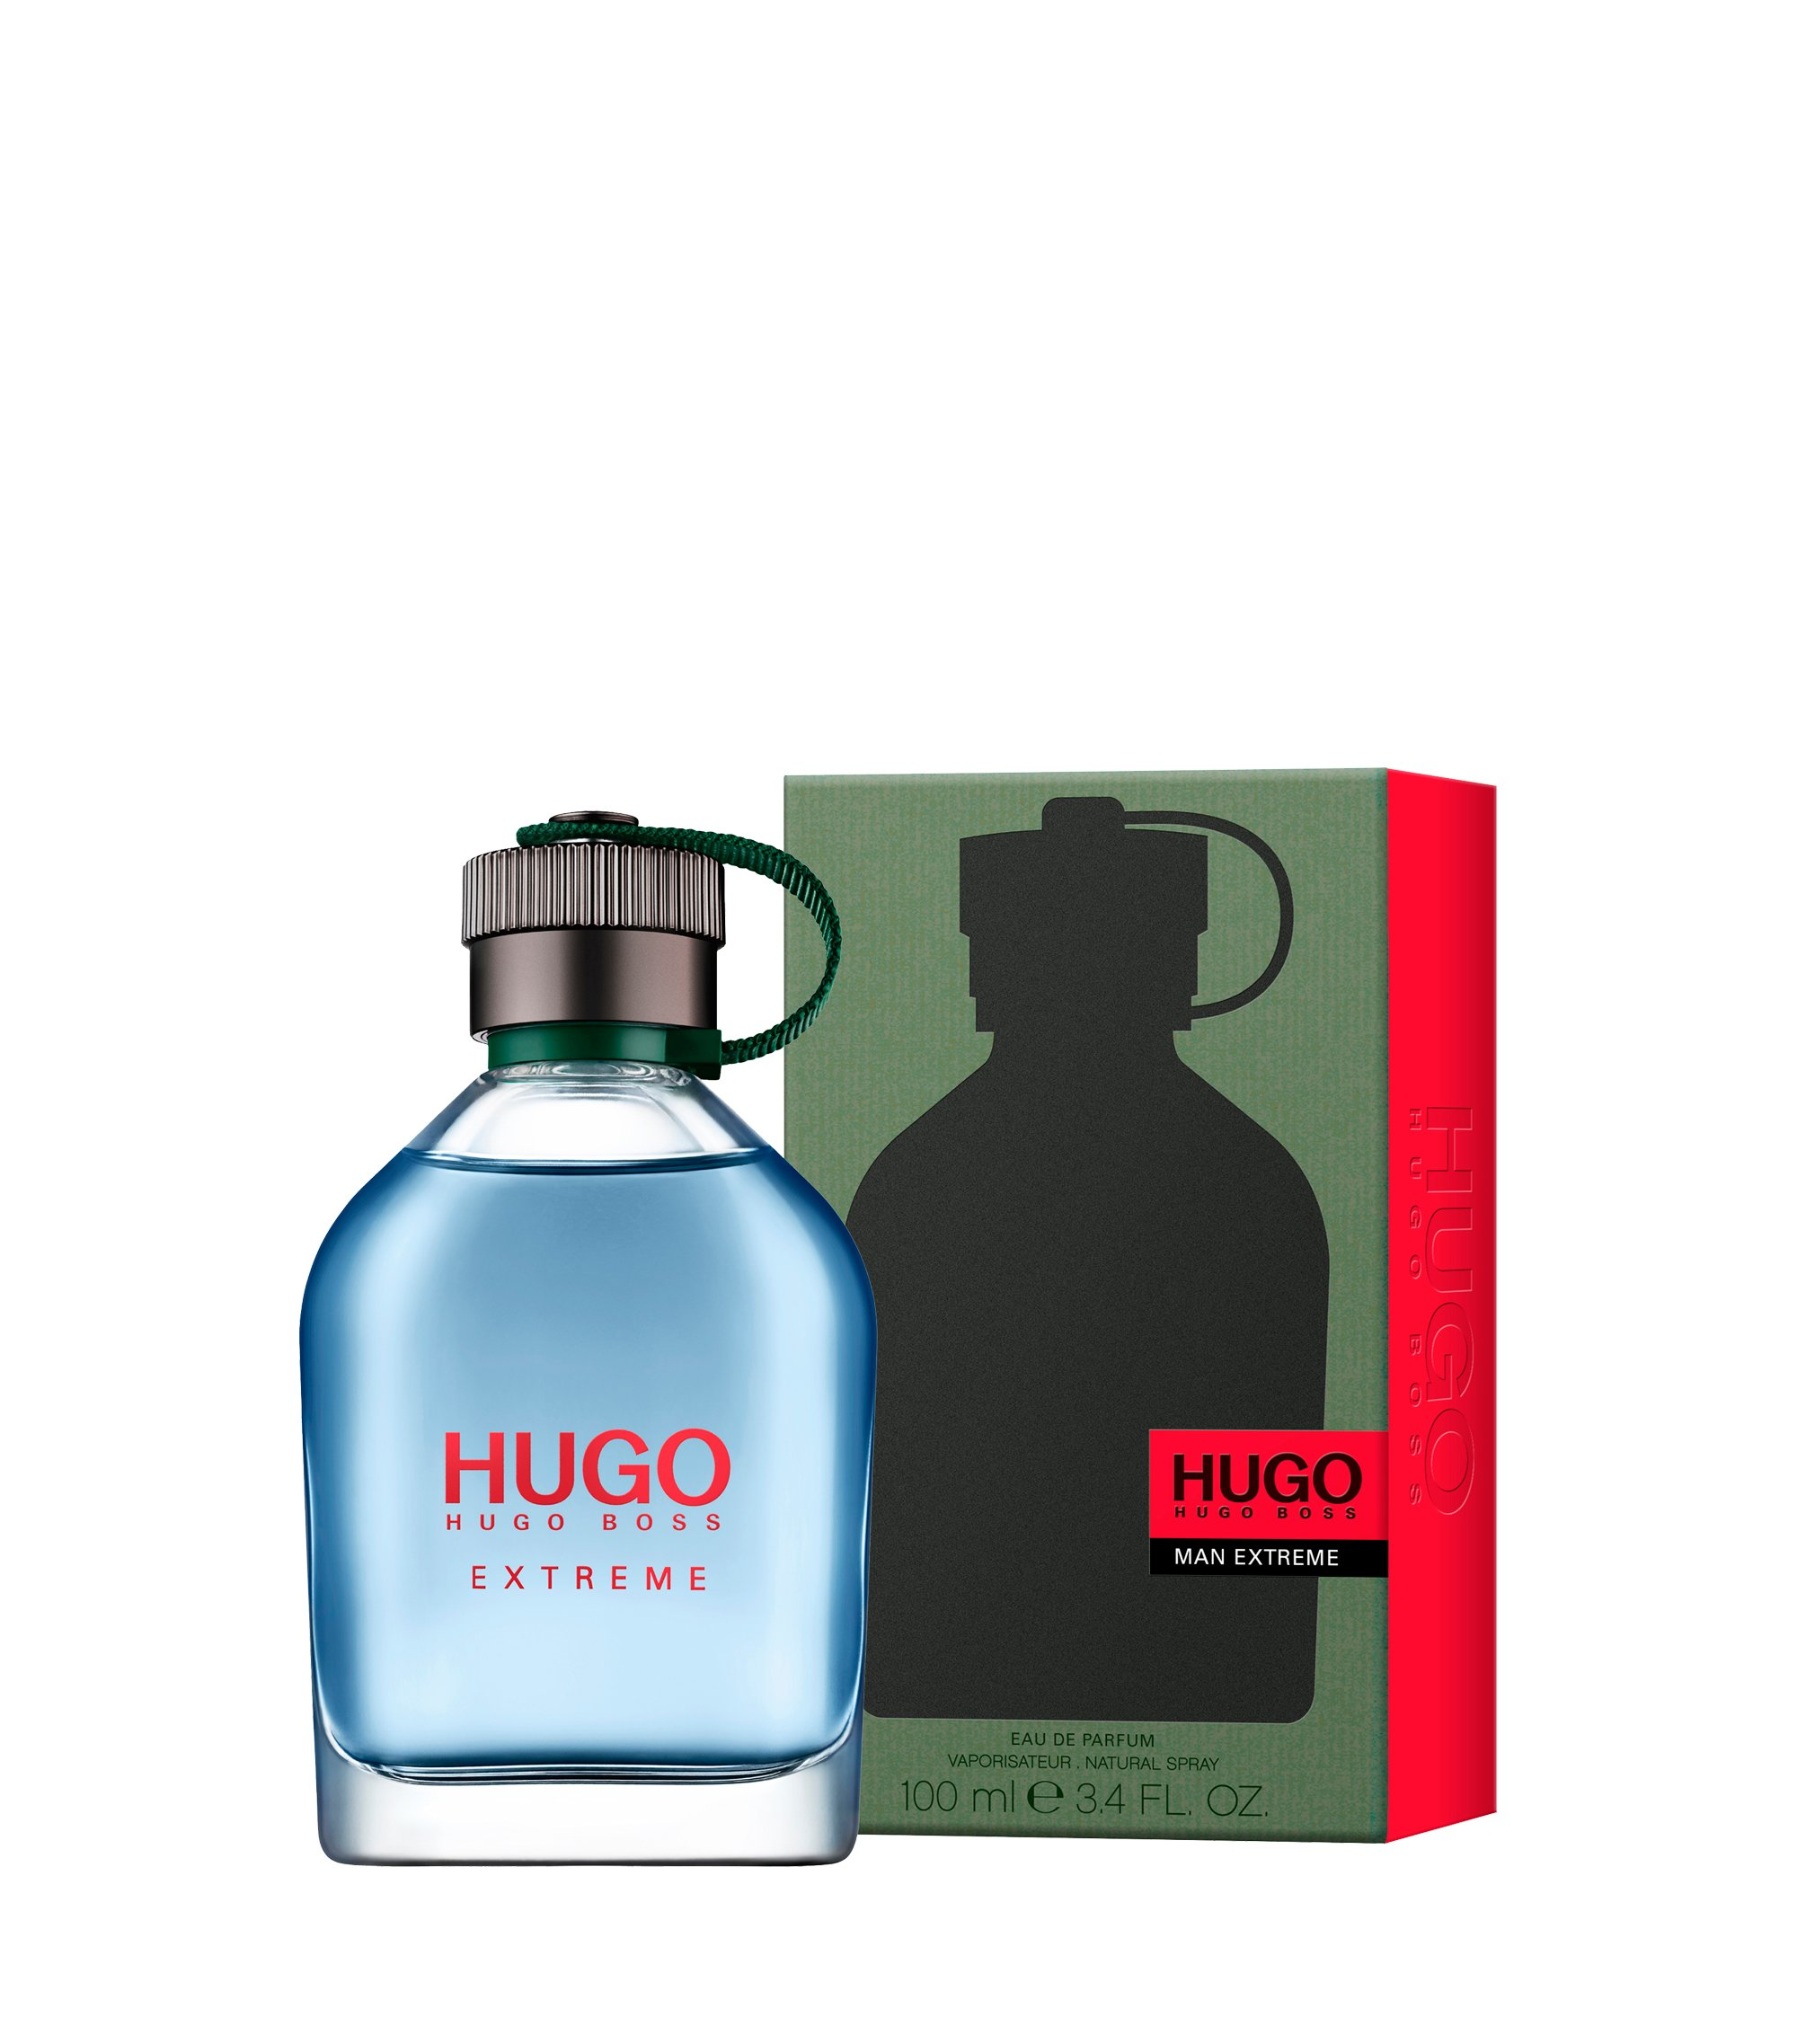 Eau de parfum HUGO Man Extreme da 100 ml, Assorted-Pre-Pack